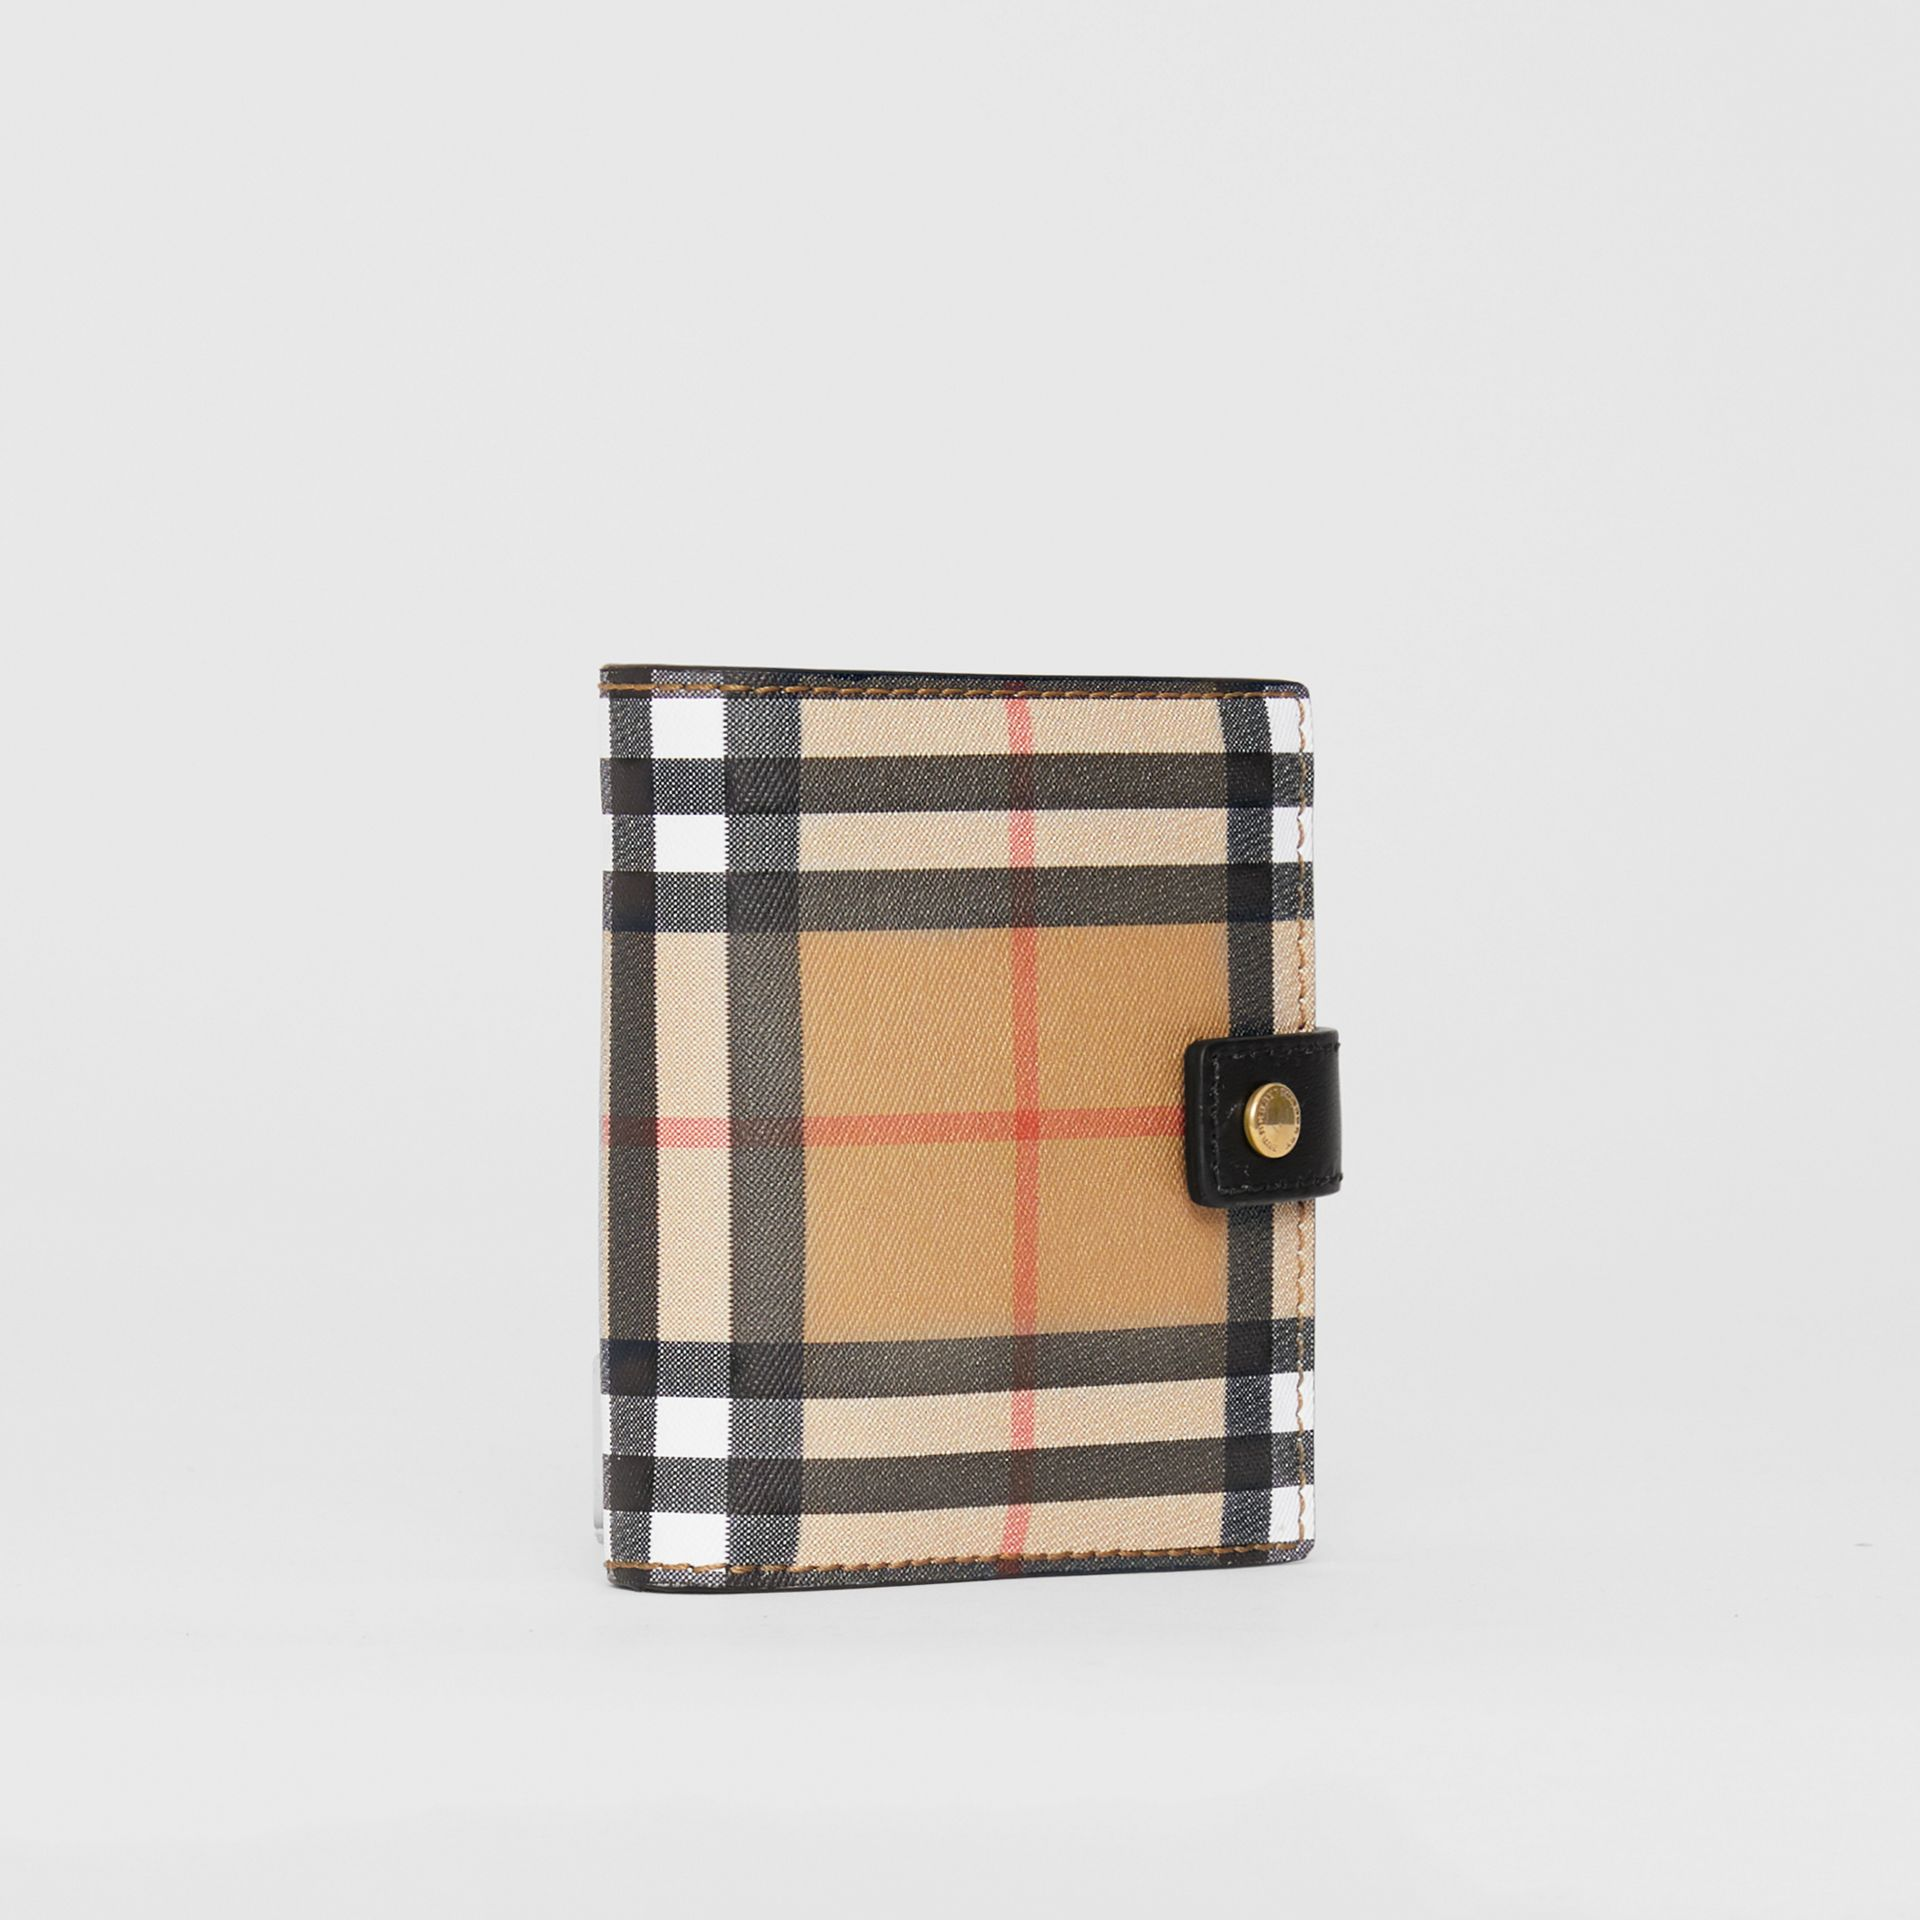 Small Vintage Check and Leather Folding Wallet in Black - Women | Burberry Canada - gallery image 4